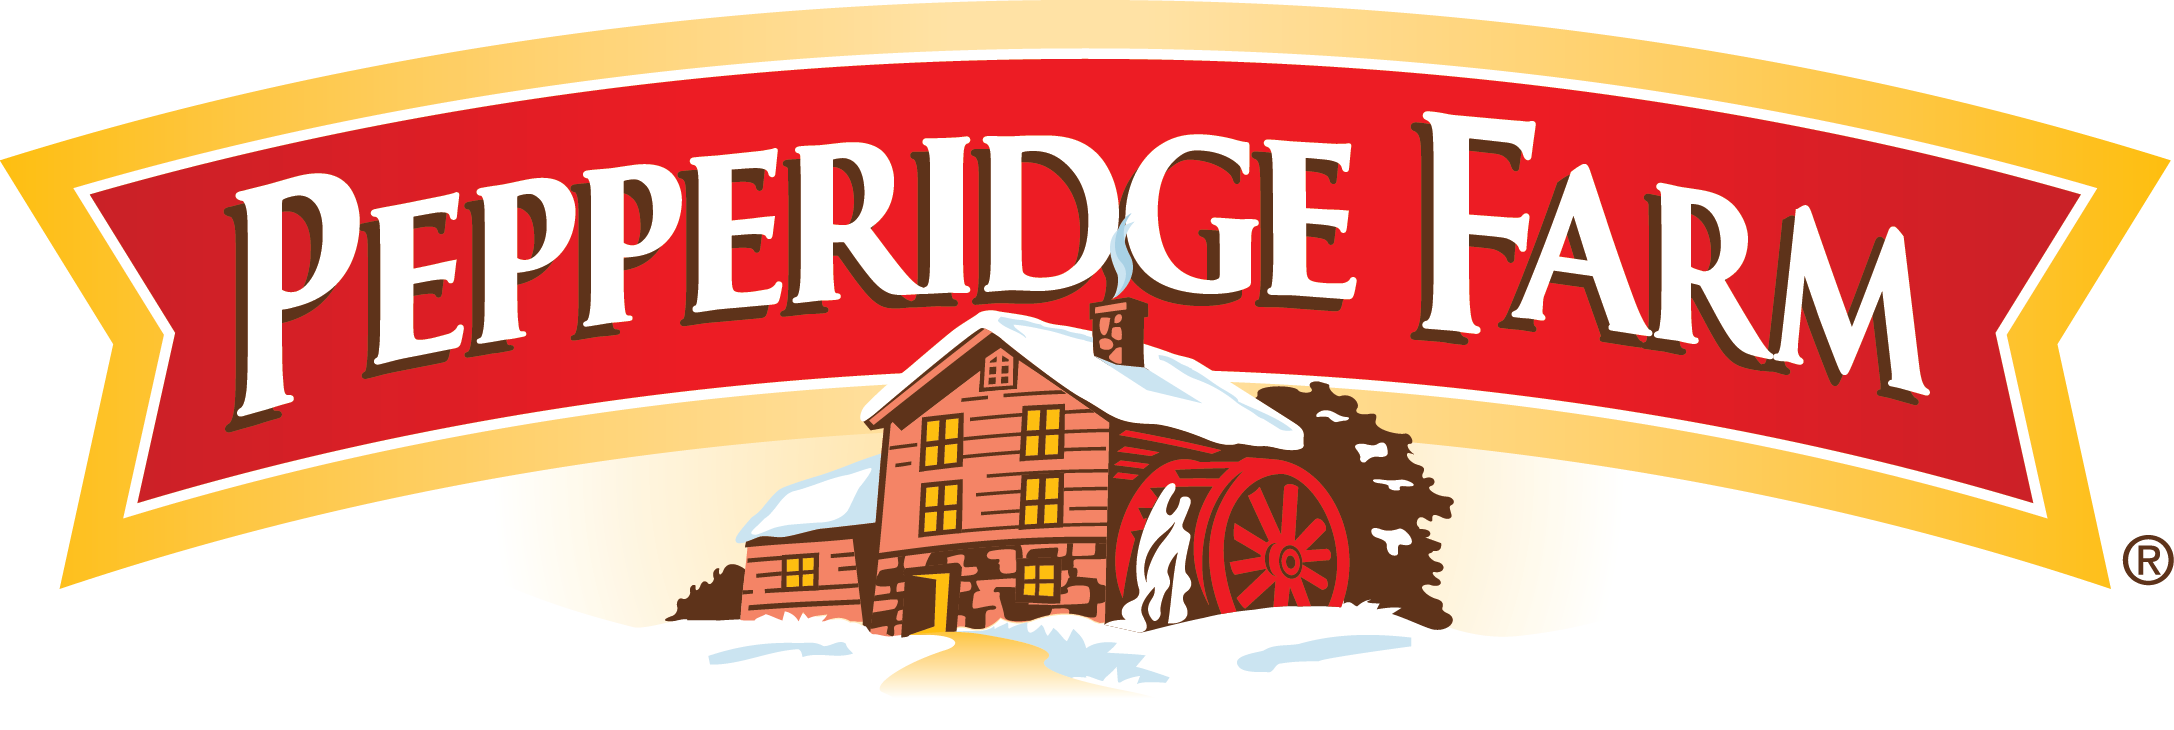 Pepperidge Farm.png